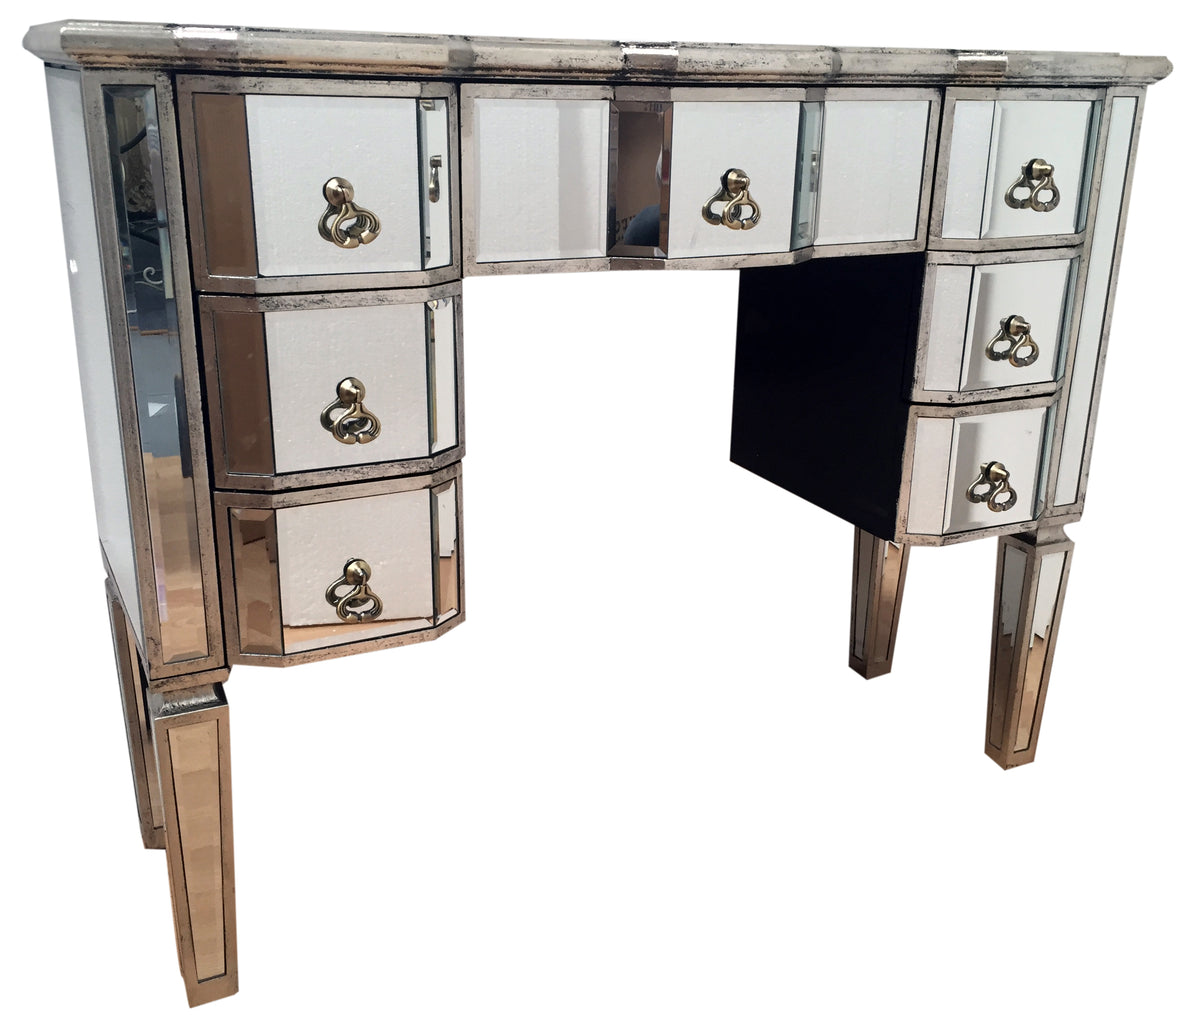 Charleston Kneehole Mirrored Dressing Table with 7 Drawers, front right angle